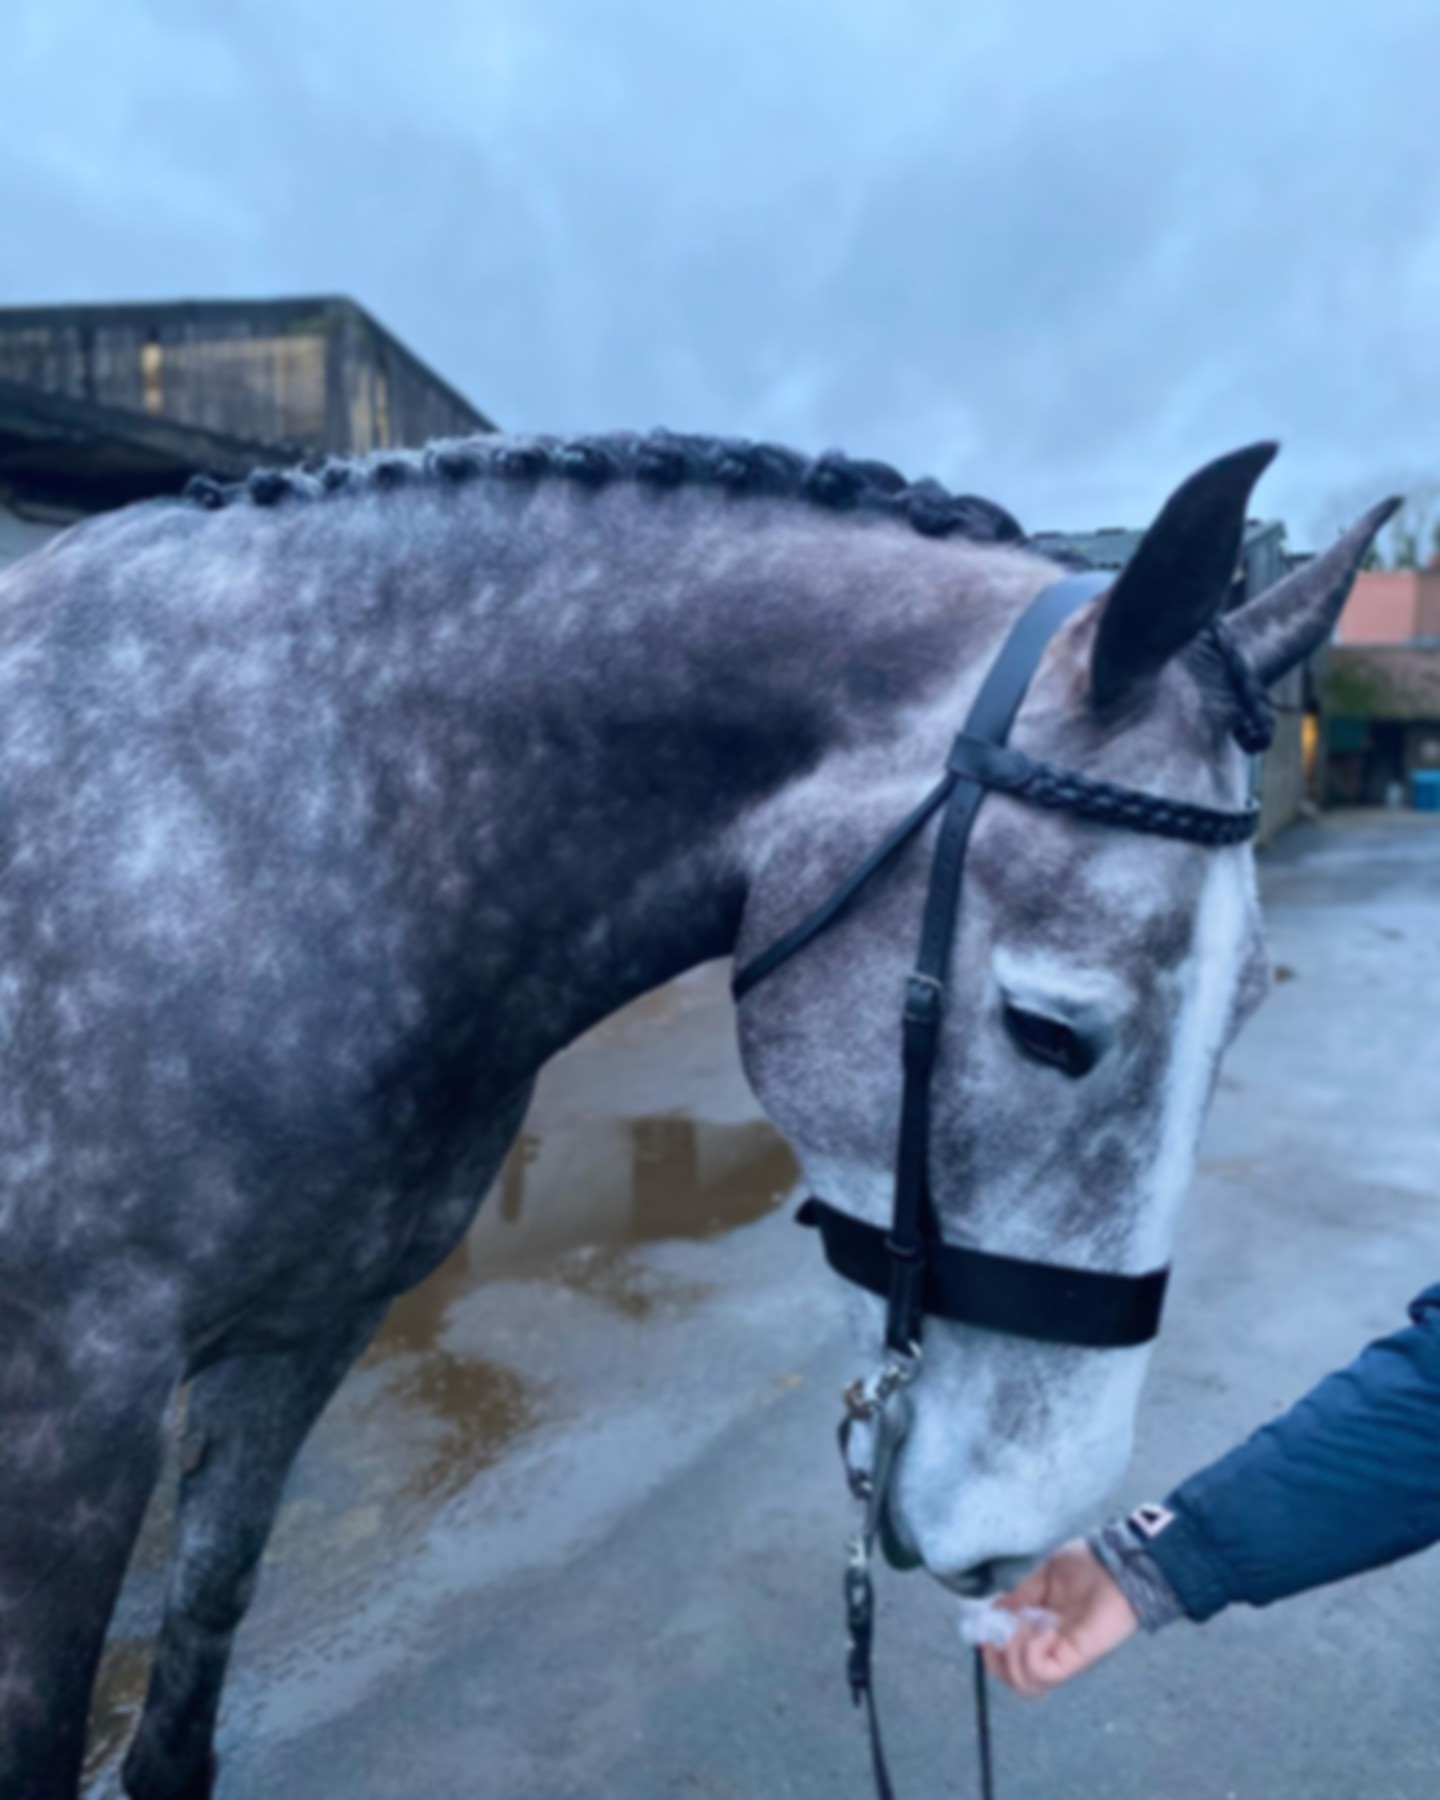 grey spotted horse wearing a bridle